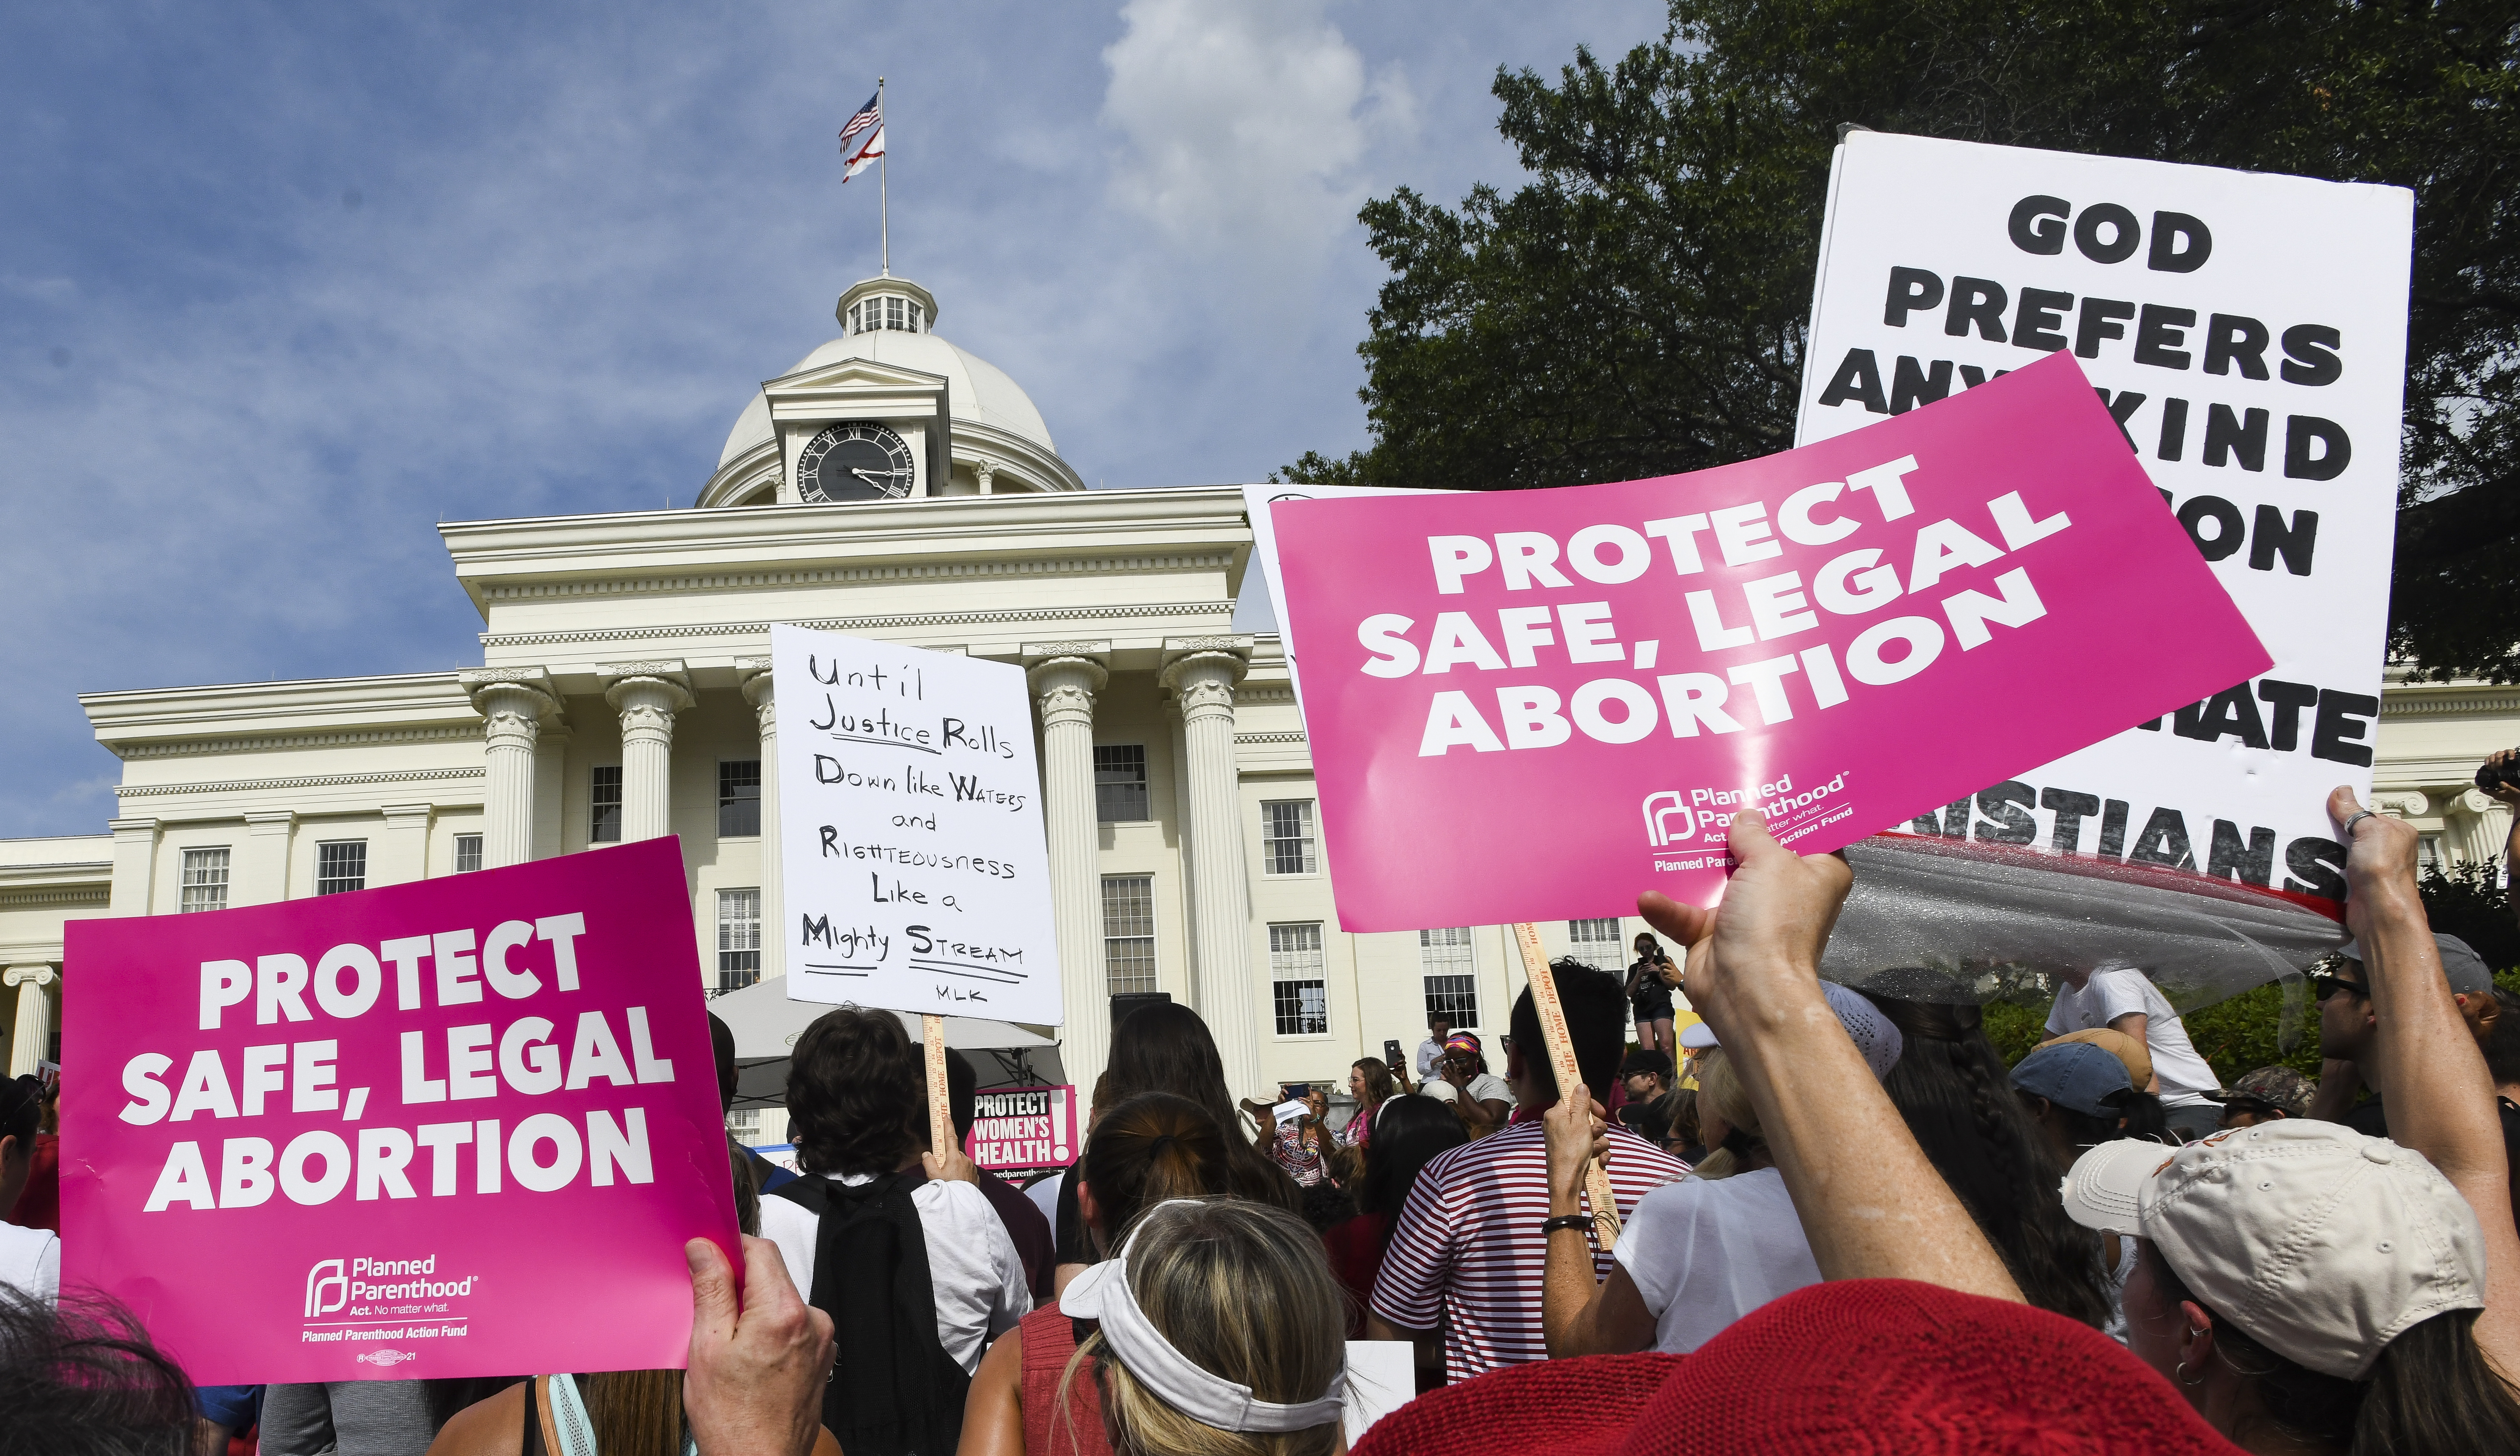 Alabama's abortion ban is being challenged in court by the ACLU and Planned Parenthood